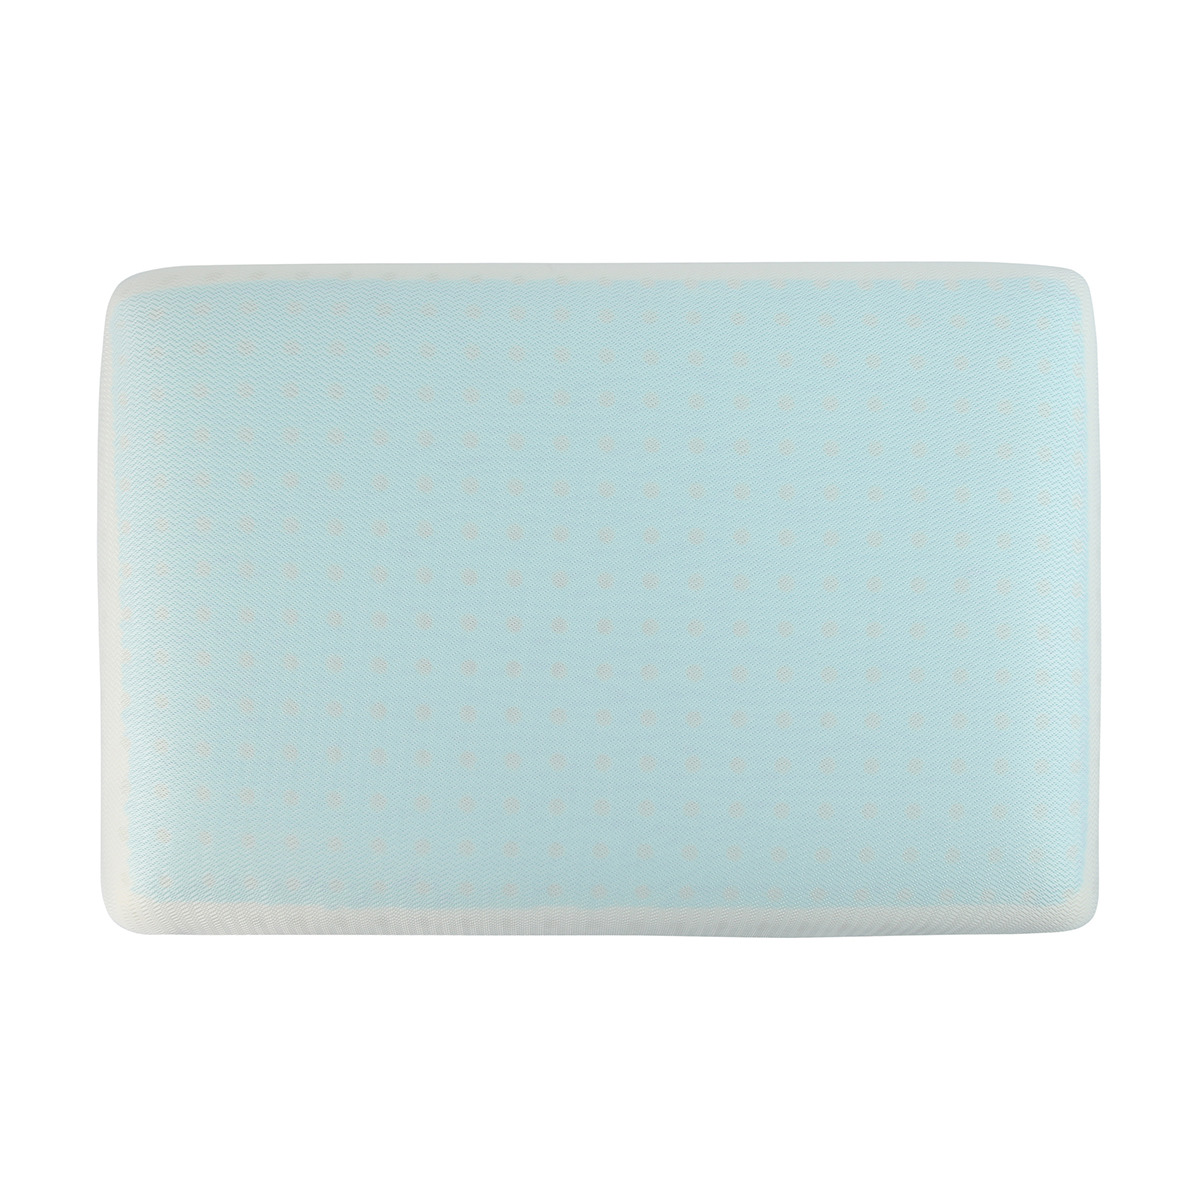 Cooling Gel Pincore Memory Foam Pillow Medium Profile Foam